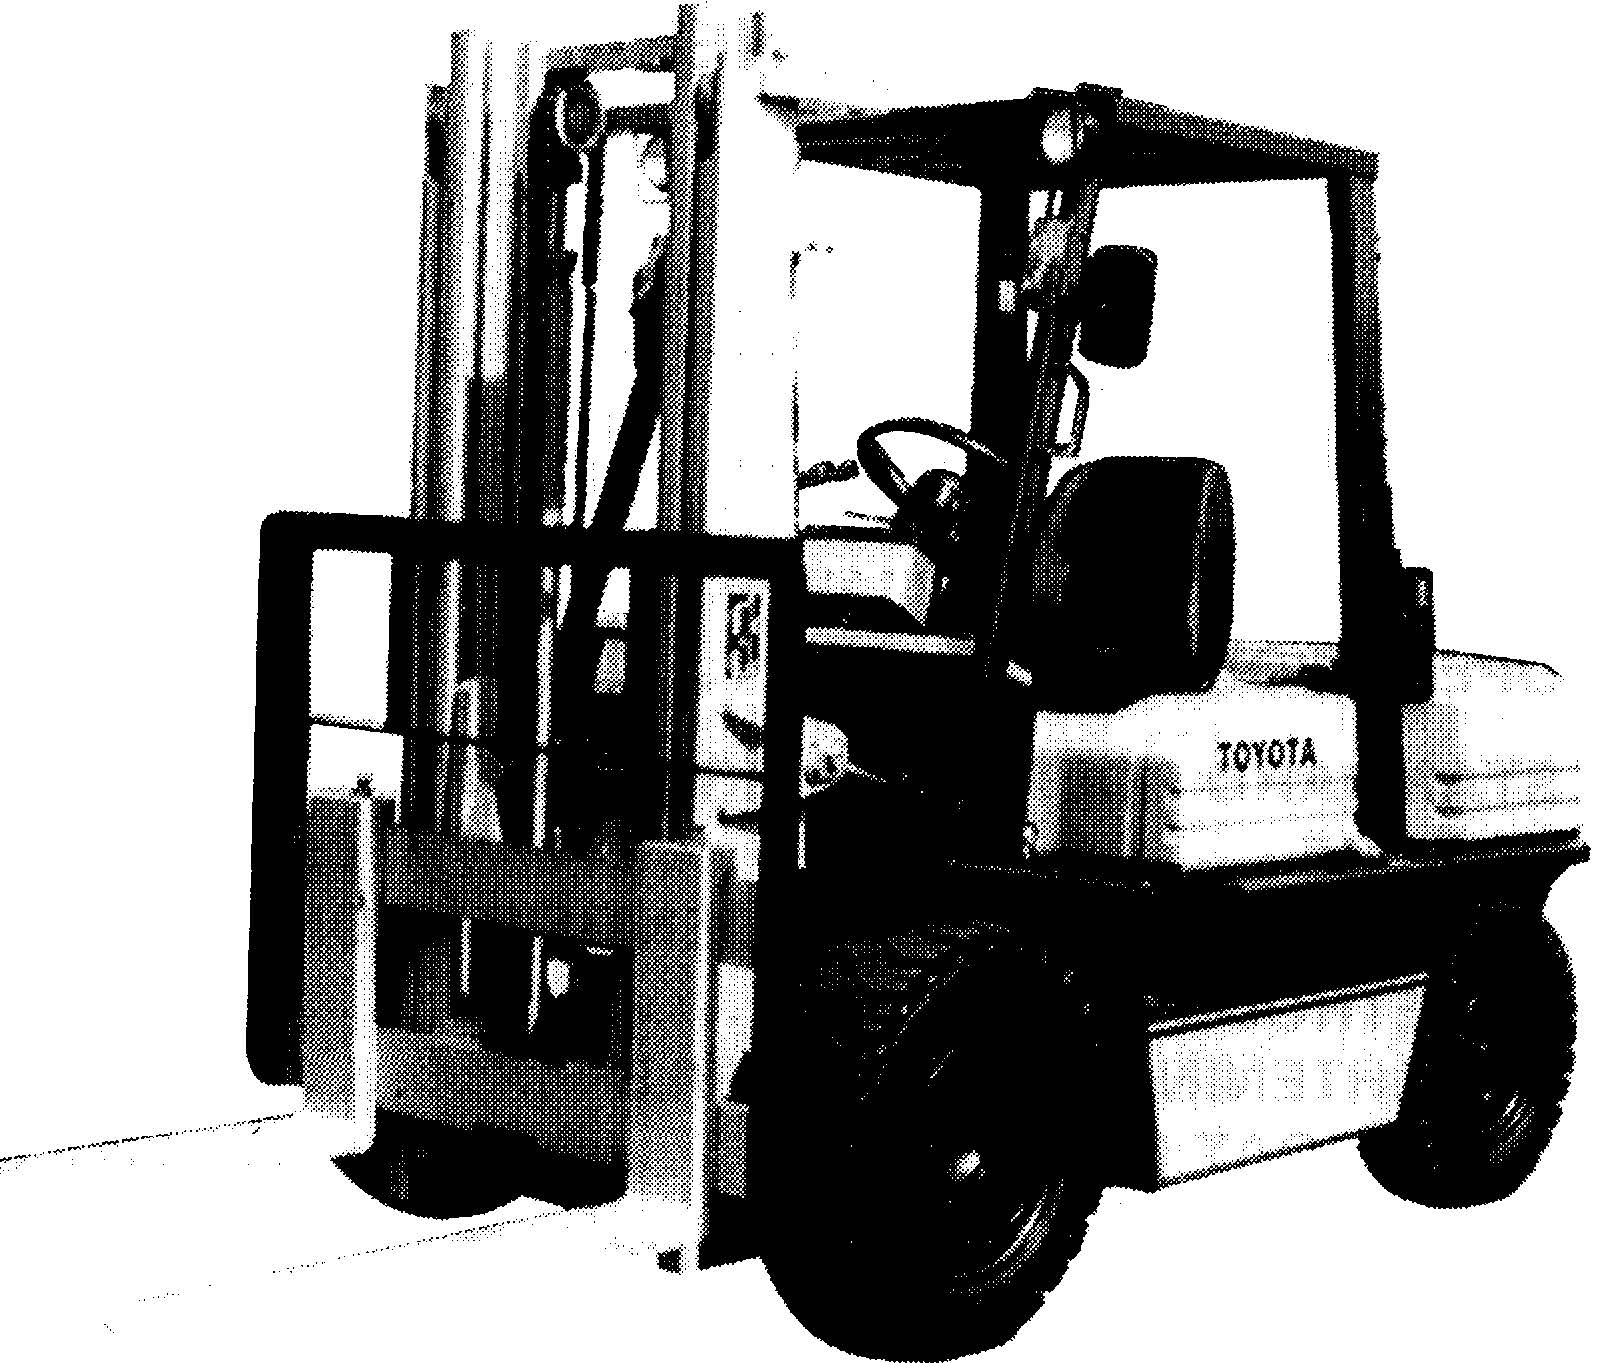 Toyota Forklift 5fgc5fdc1830 Series Service Repair M. Toyota Forklift 5fgc5fdc1830 Series Service Repair Manual Download. Toyota. Toyota 5fgc25 Forklift Wiring Diagram At Scoala.co